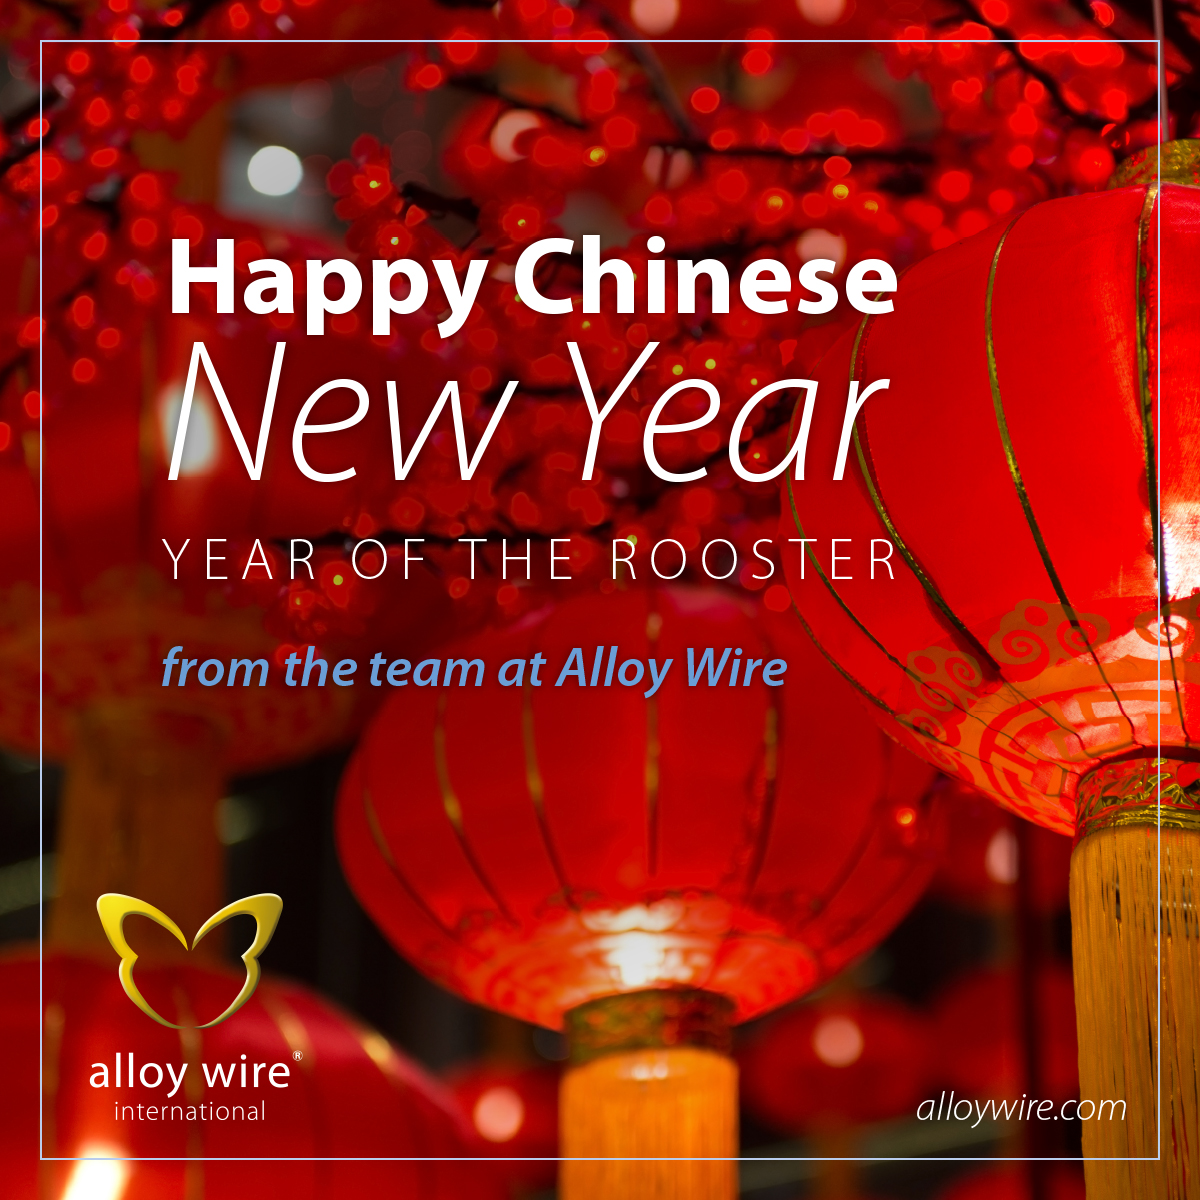 Happy Chinese New Year 2017 - Alloy Wire International